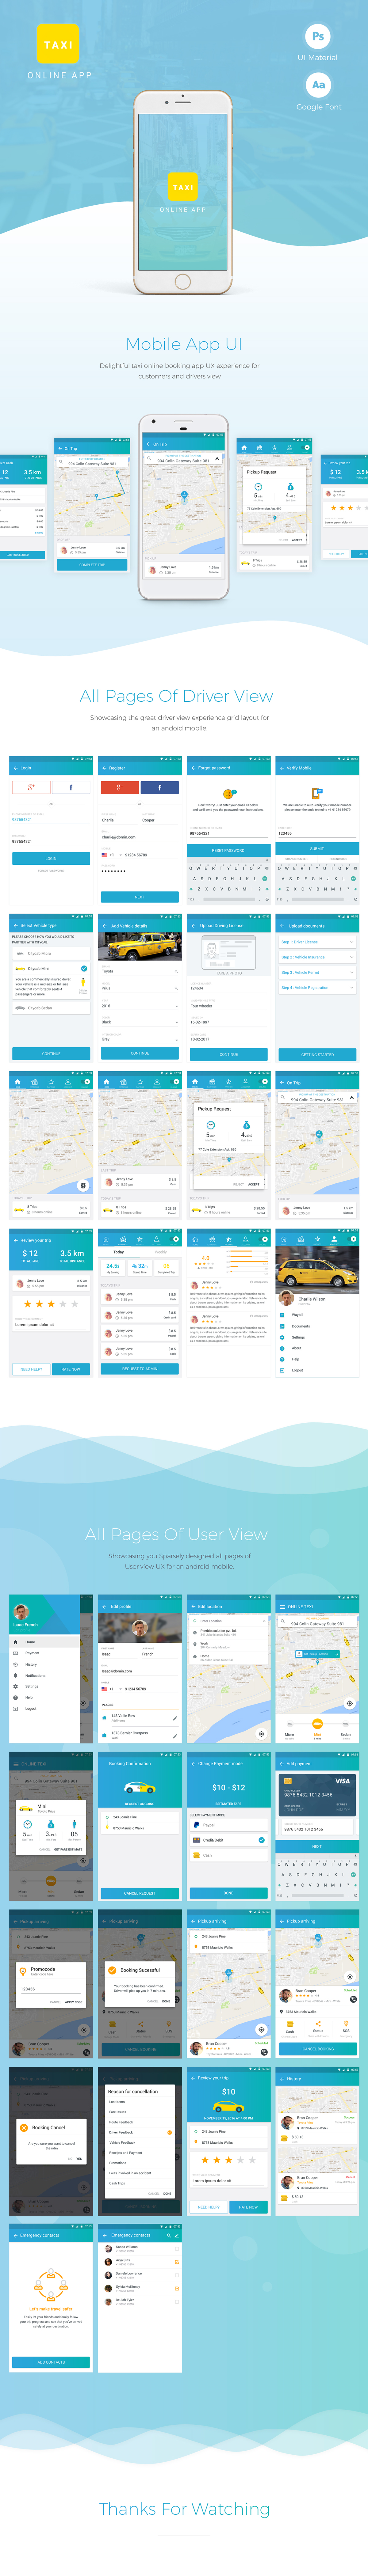 Online Taxi Booking - App Design on Student Show